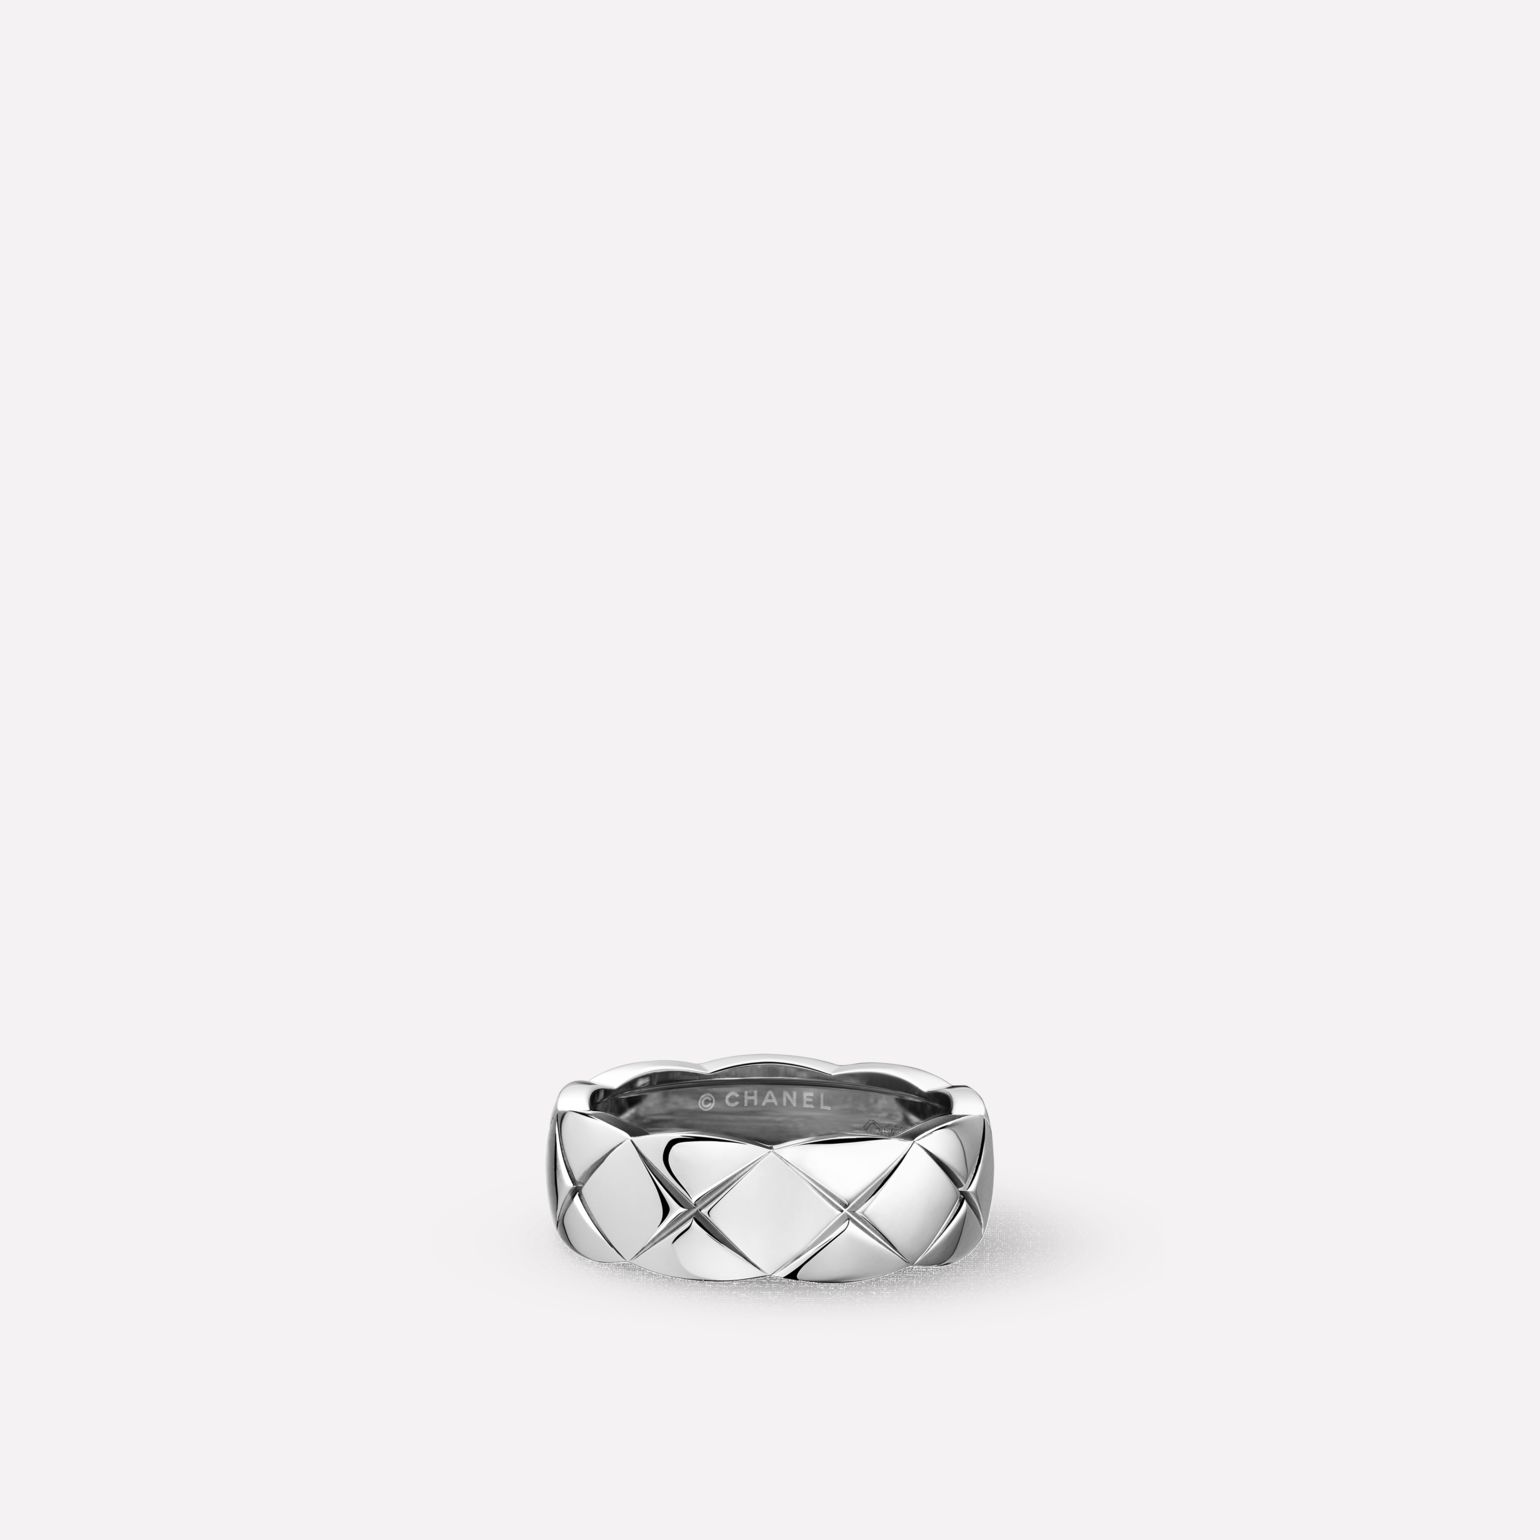 Coco Crush ring Quilted motif ring, small version, in 18K white gold